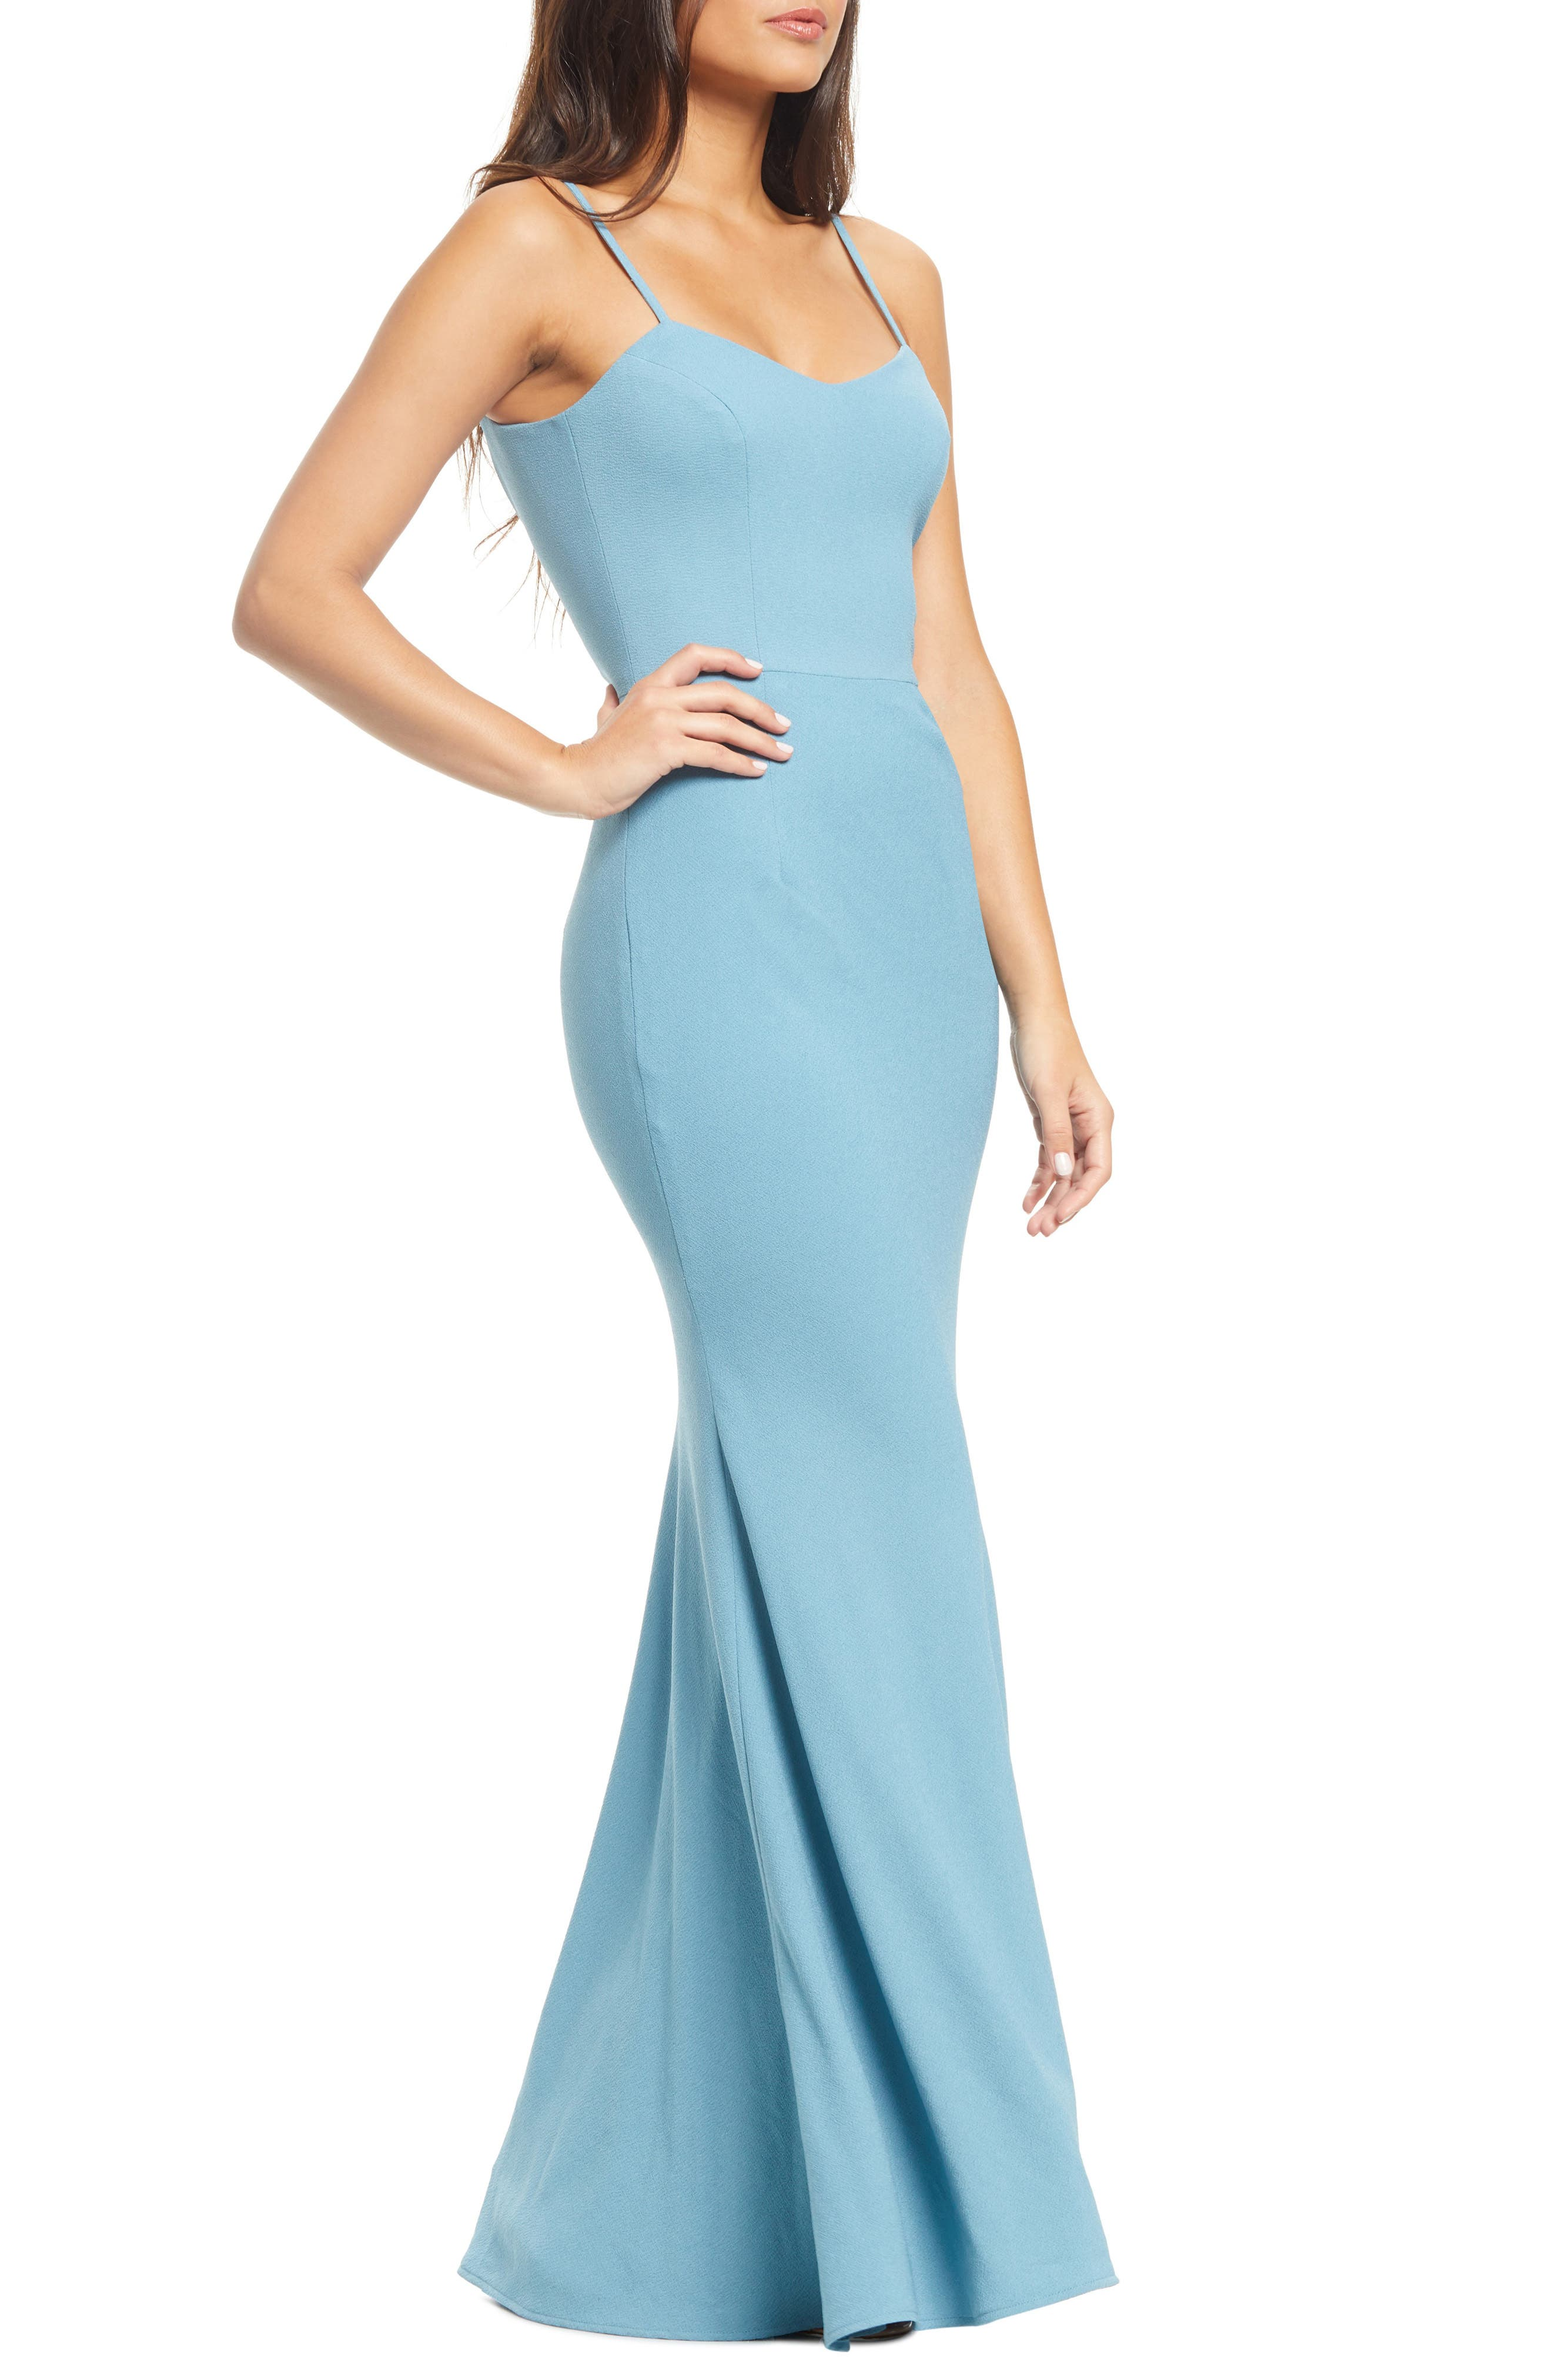 DRESS THE POPULATION Jodi Crepe Evening Dress, Main, color, SEA BREEZE